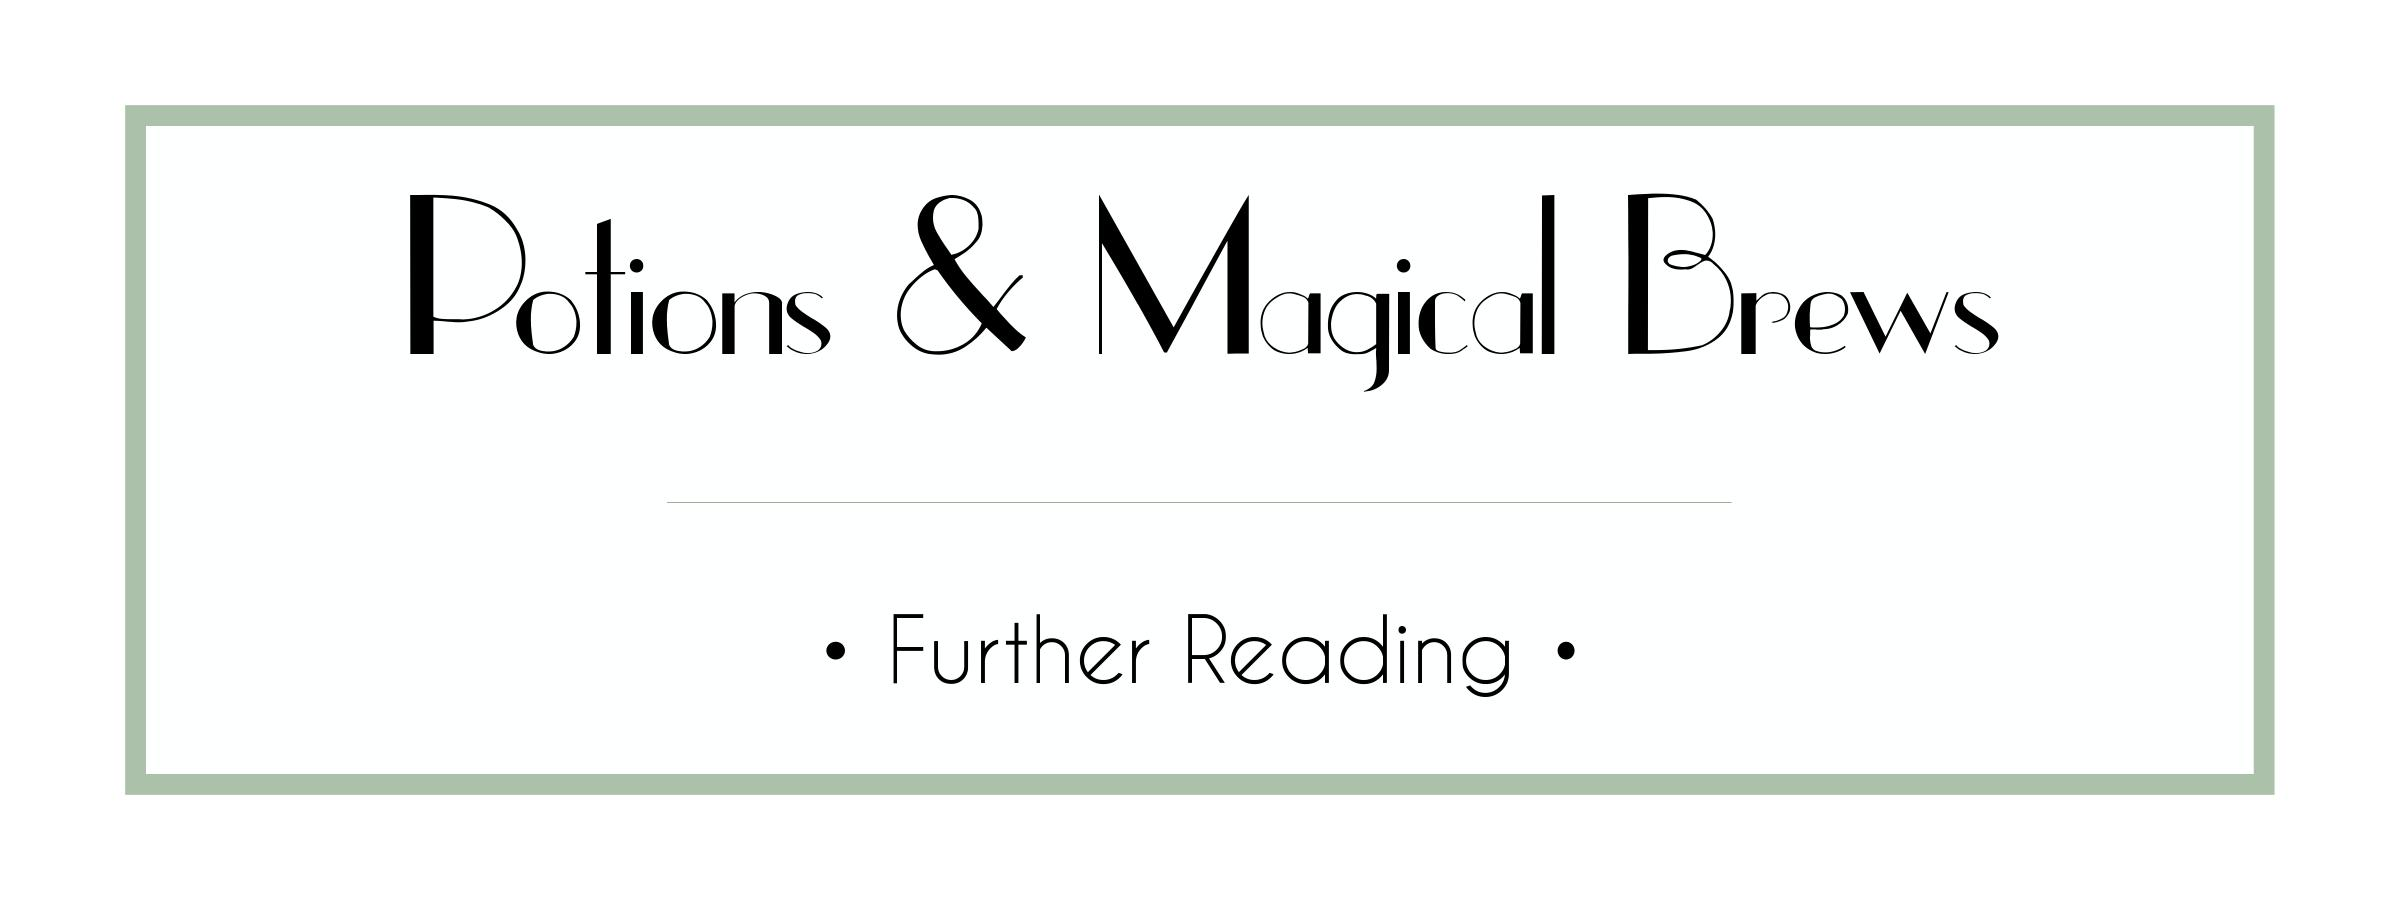 Potions & Magical Brews - Further Reading